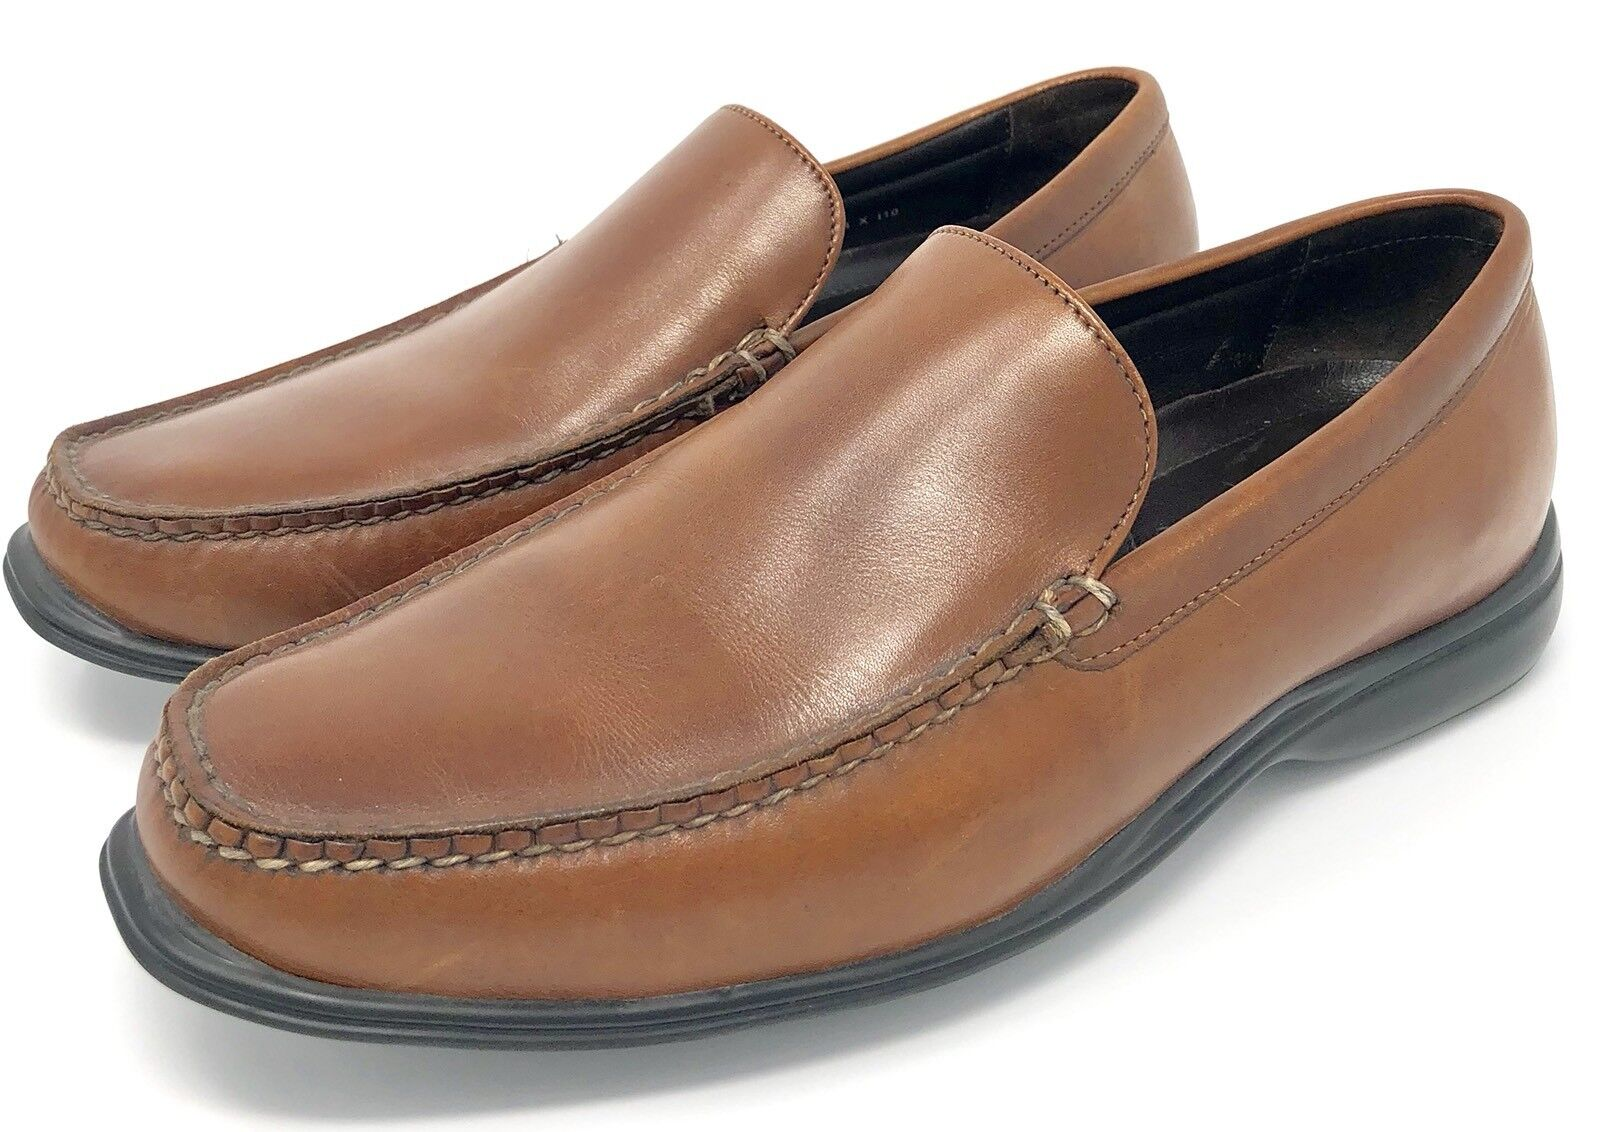 COLE HAAN Tan Leather Air Holden Venetian Slip On Moc Loafers Sz 8 W